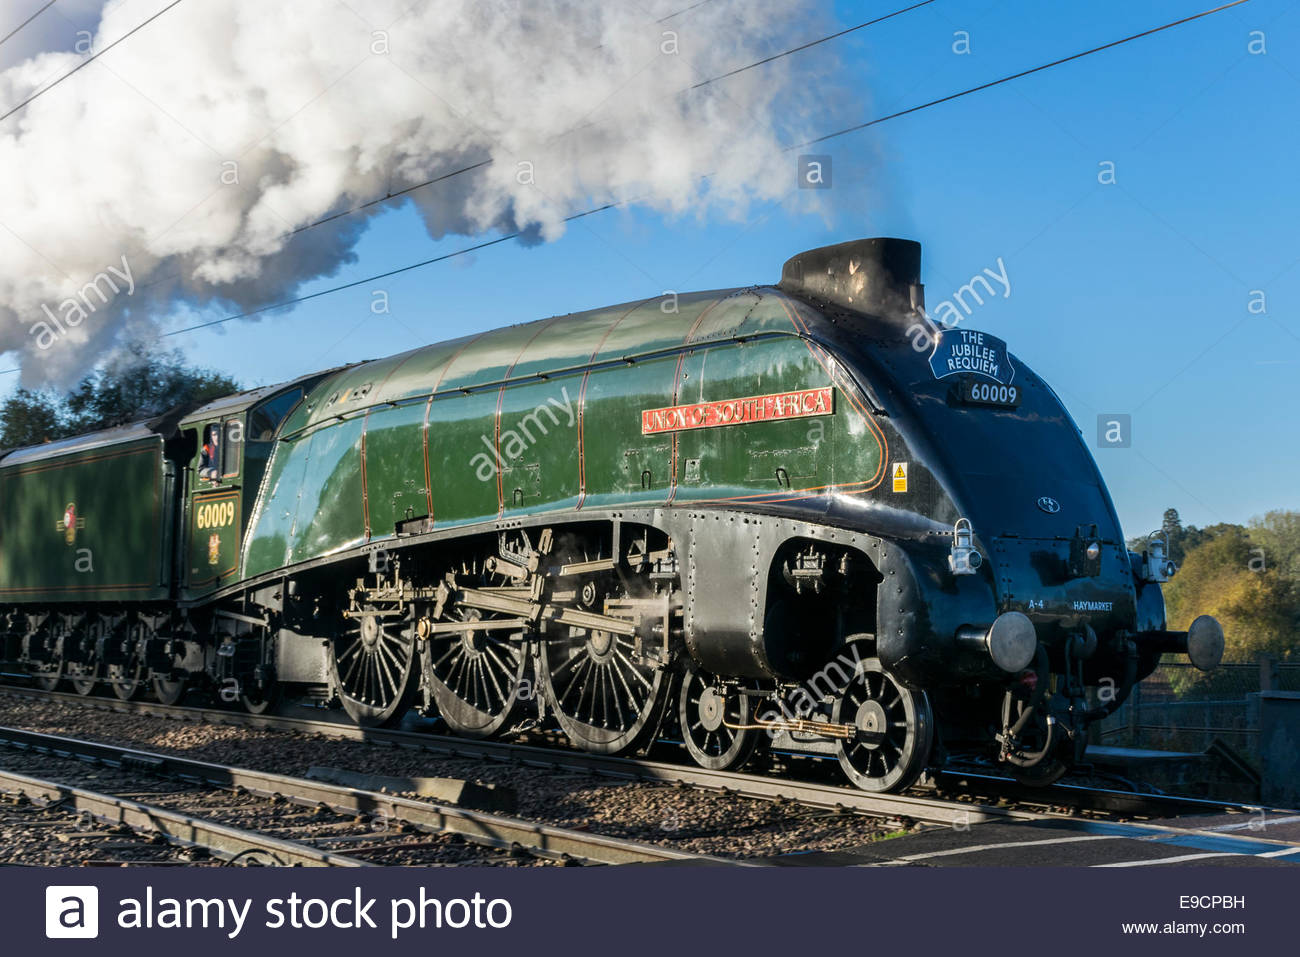 Holme, UK. 25th Oct, 2014. 60009 Union of South Africa, an LNER class A4 locomotive, generates clouds of steam in - Stock Image